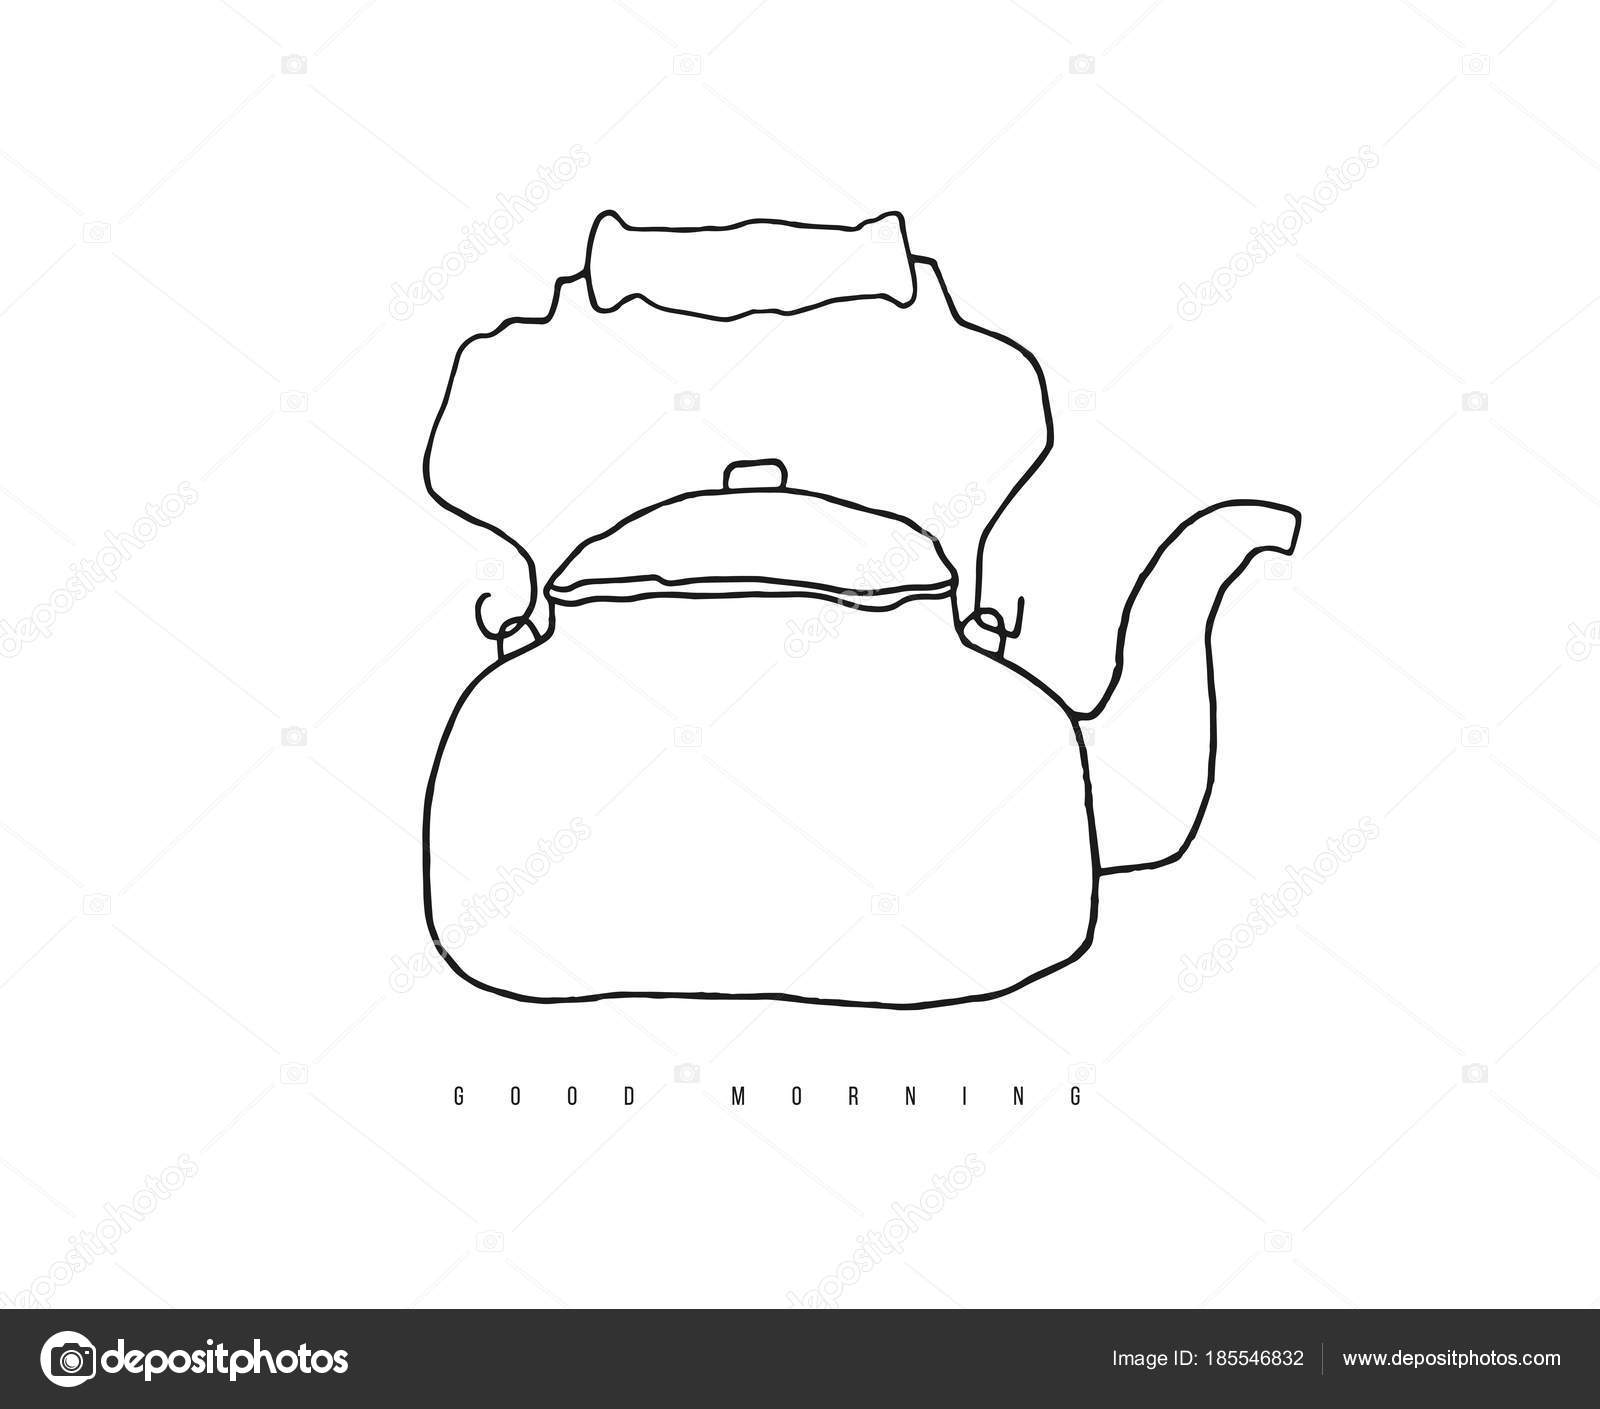 Hand Drawn Doodle Stove Top Kettle Contour Vector Kitchen Line Stock Photo